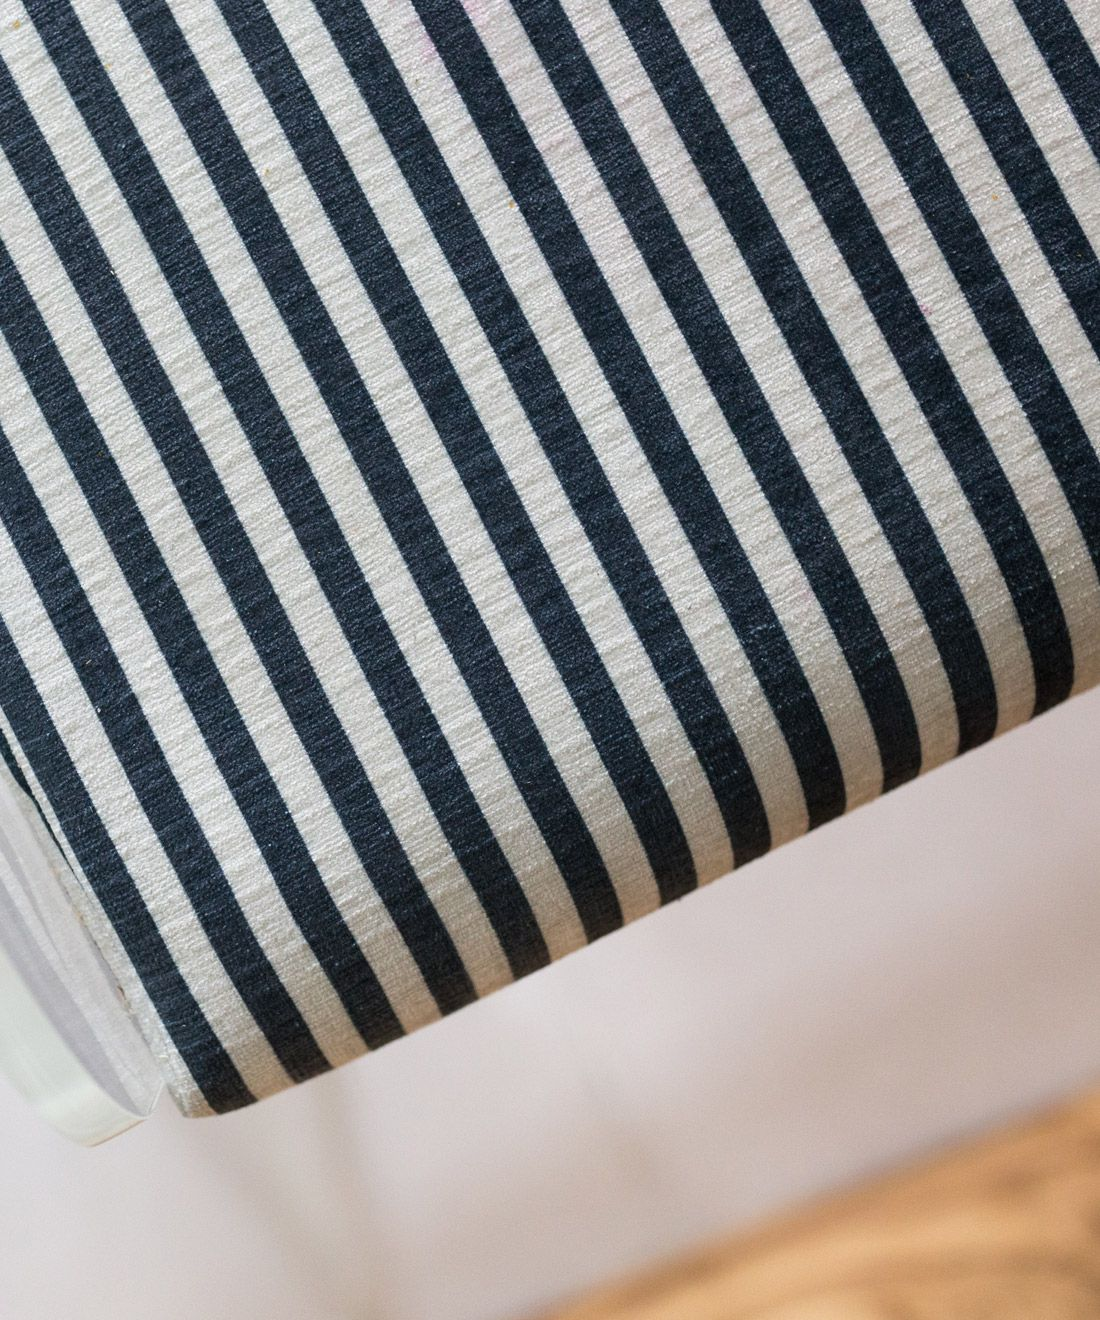 Candy Stripe Fabric • Black and White Striped Fabric •Bethany Linz • upholstered kitchen stools by Jewel Marlowe